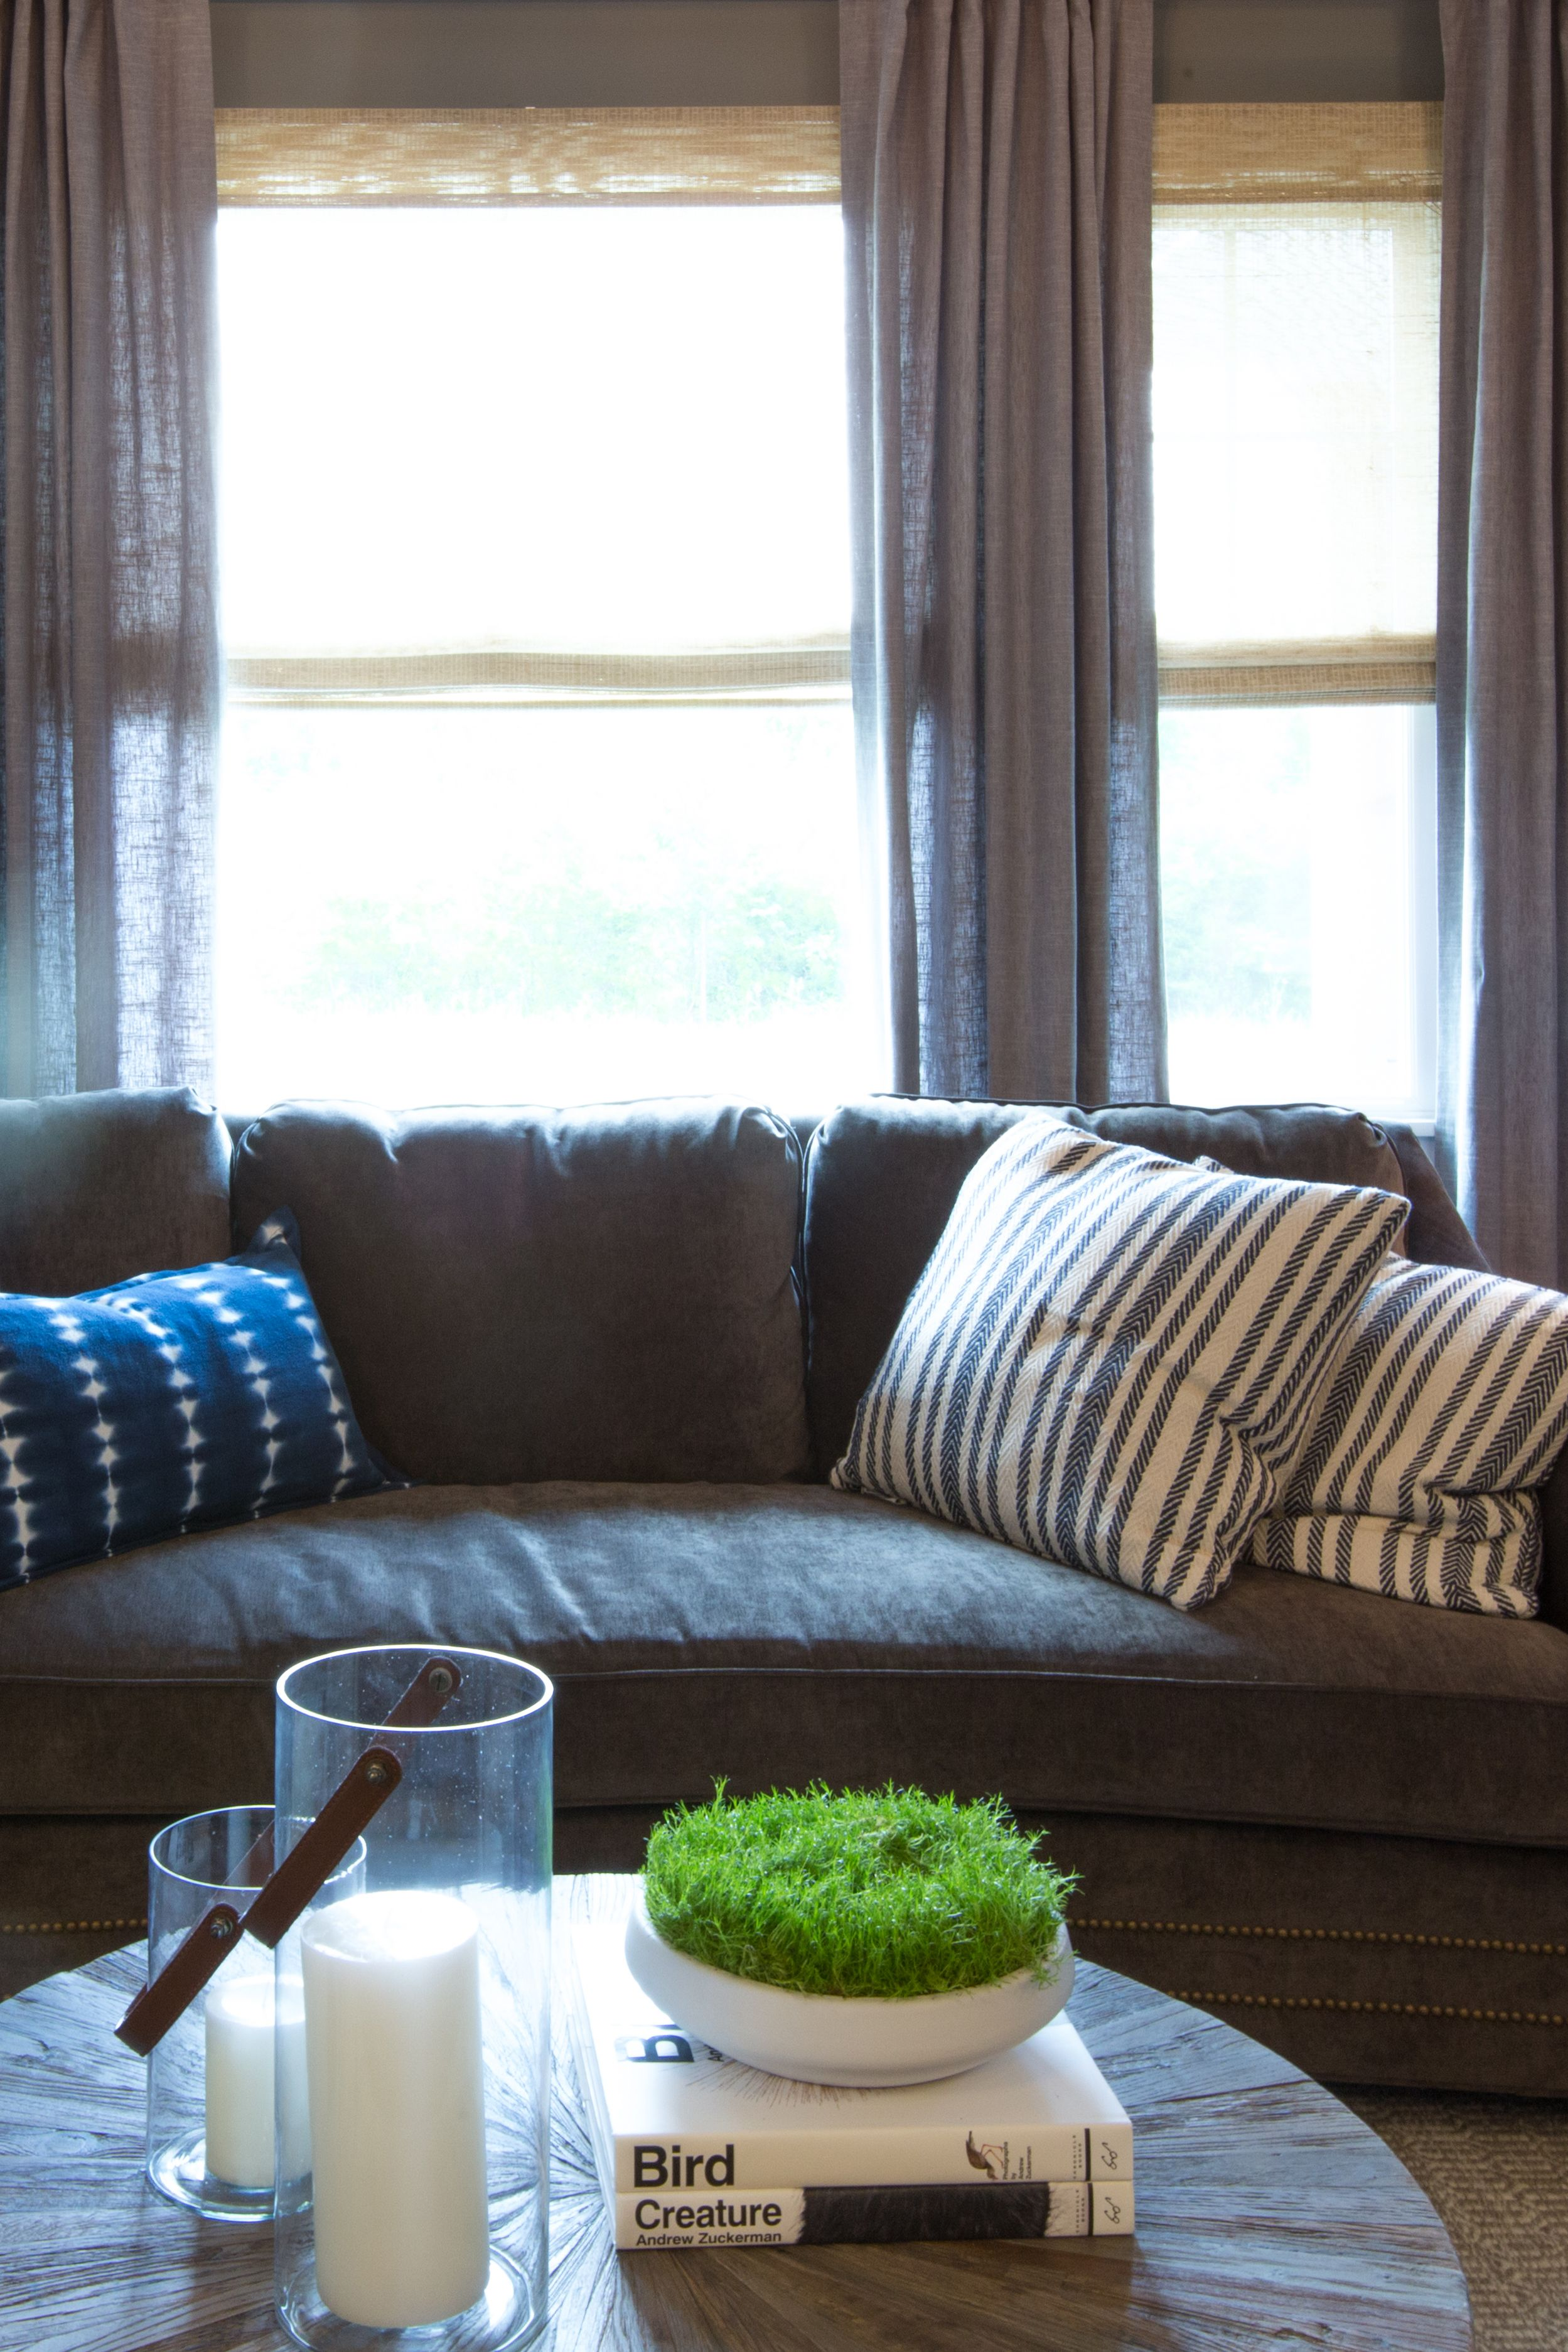 Wooden Furniture Living Room Designs: As Seen On Property Brothers: Bachelor Pad Gets A Spacious